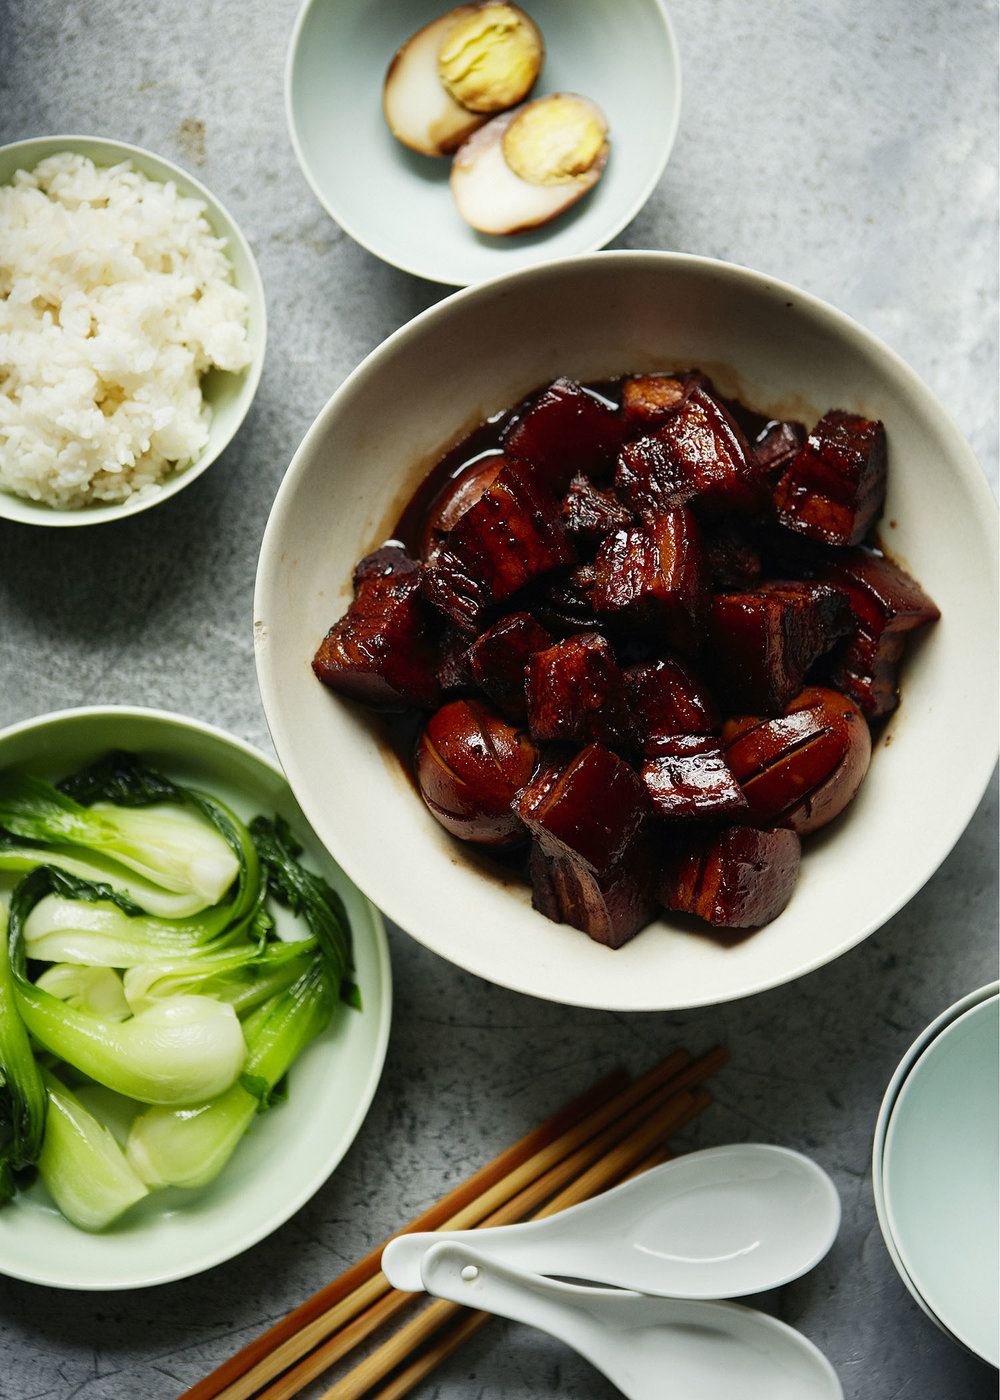 Red braised pork_014.jpg